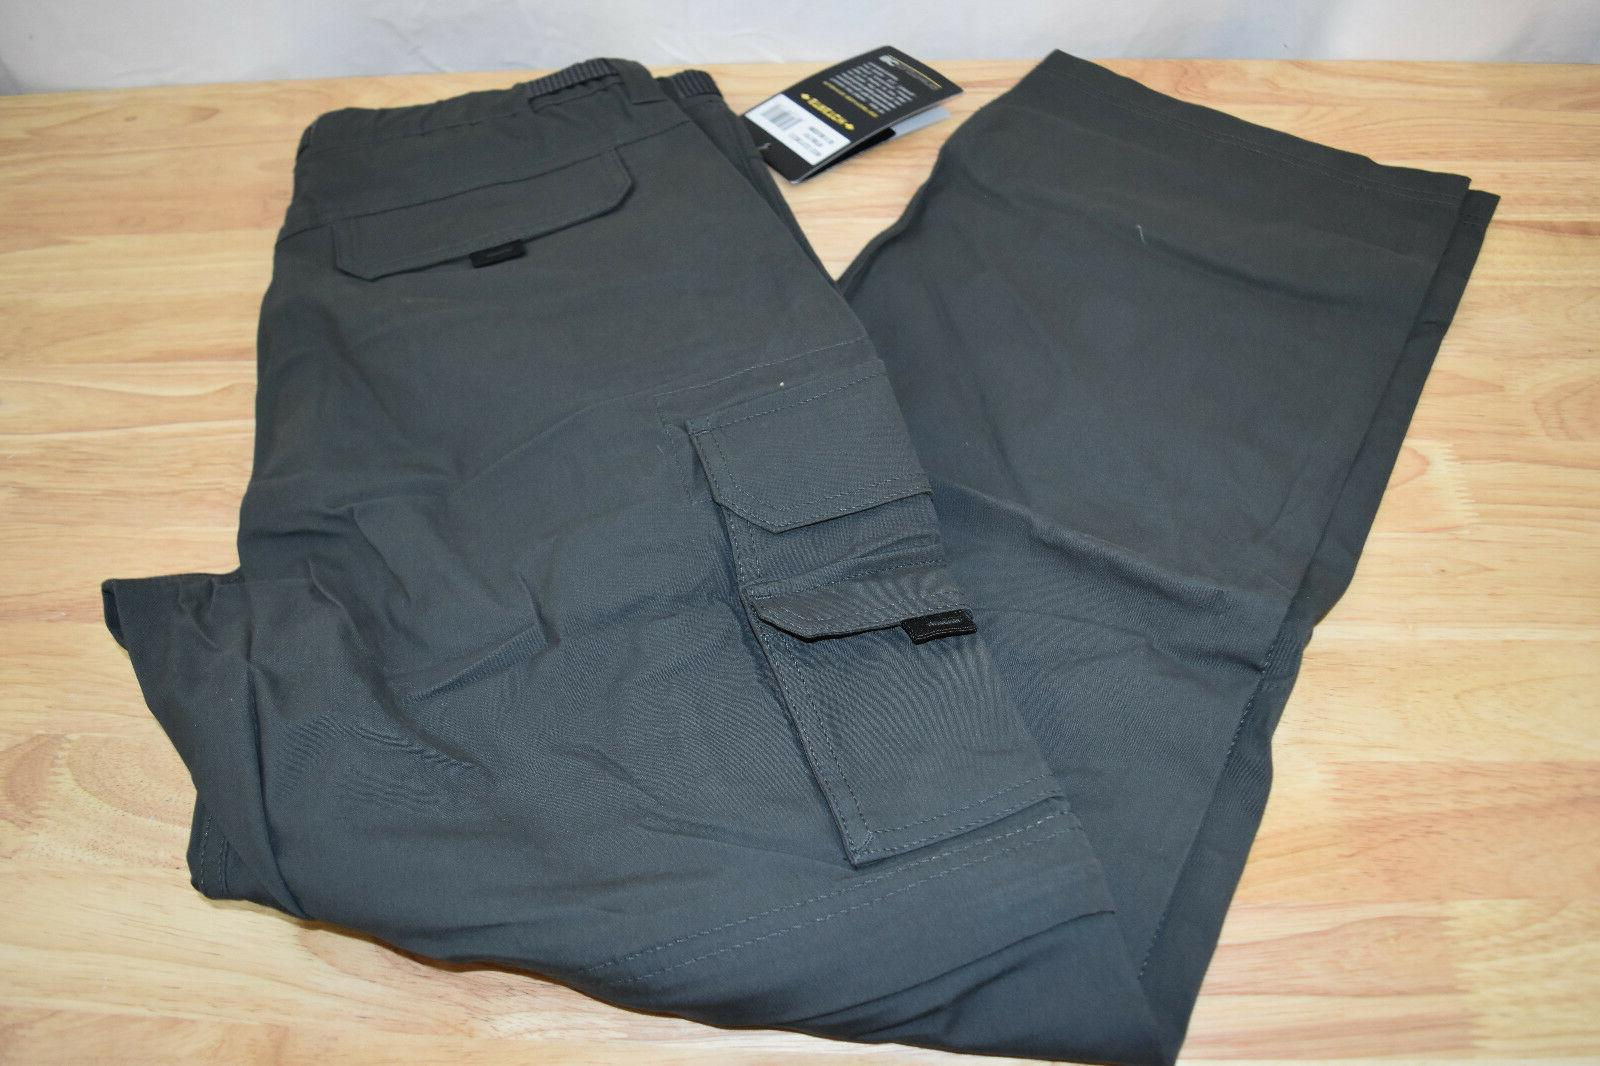 NWT Convertible Cargo Shorts Stretch VARIETY!